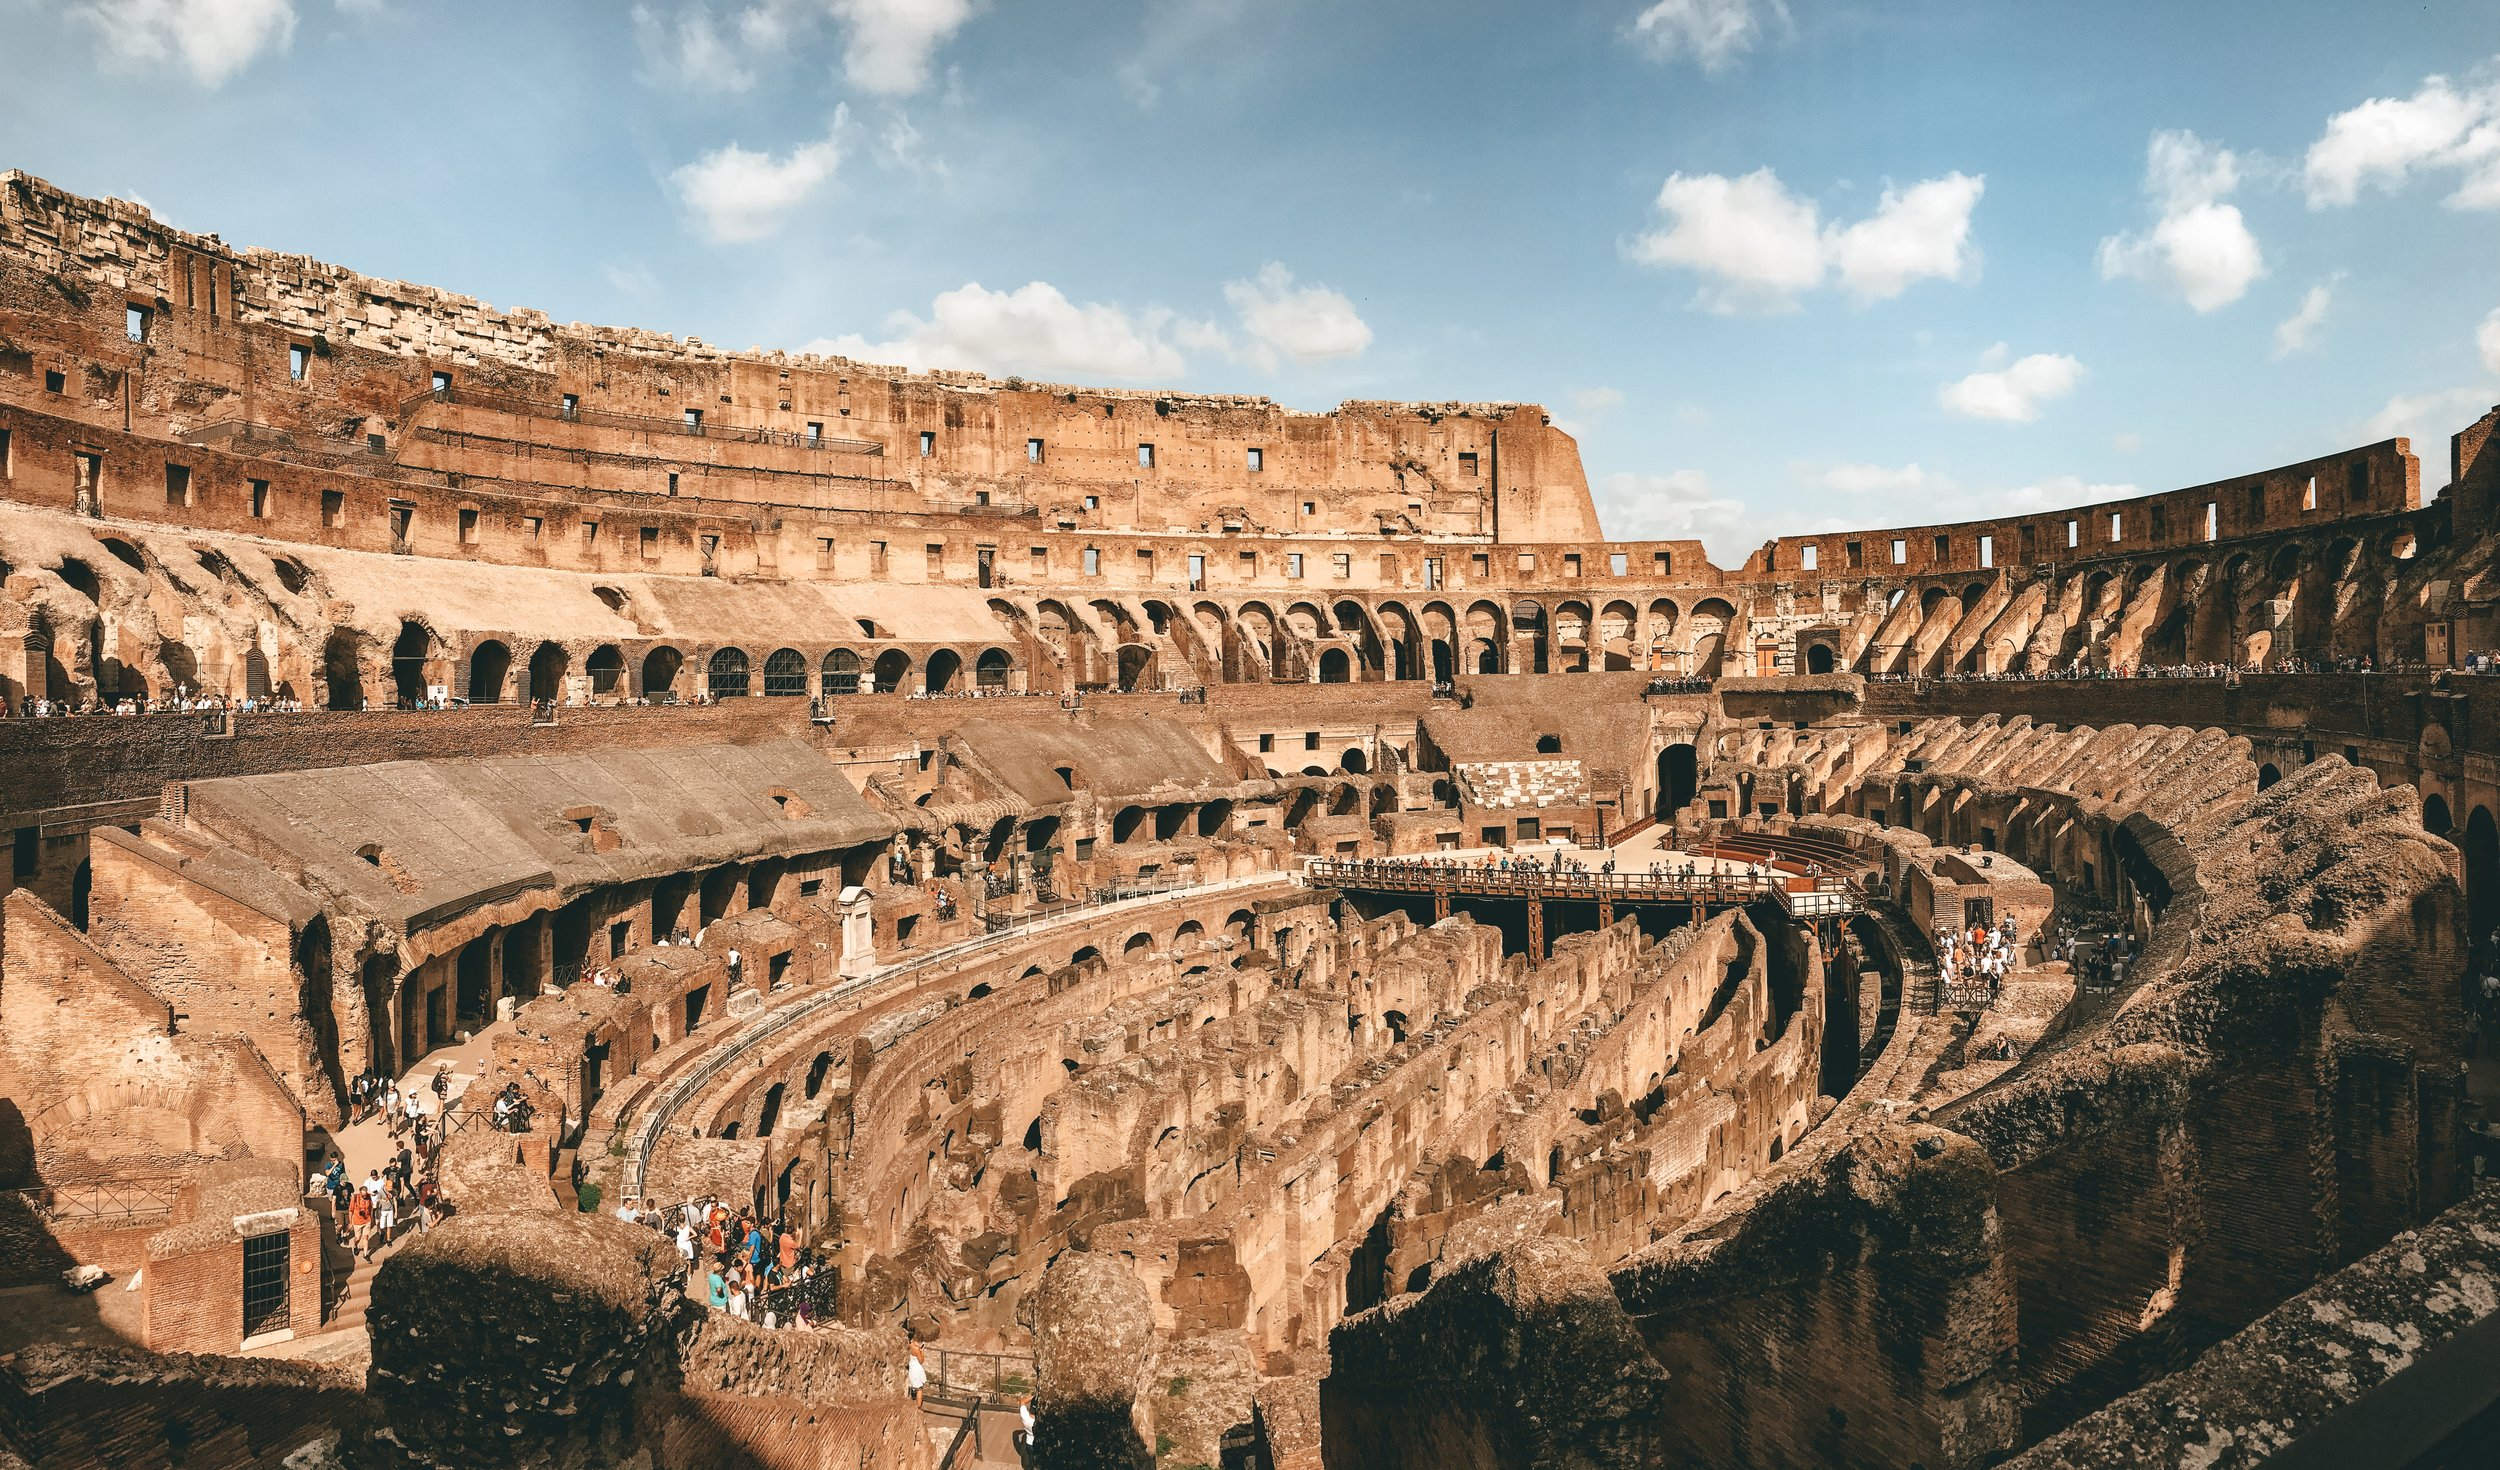 Inside the Colosseum - Rome, Italy